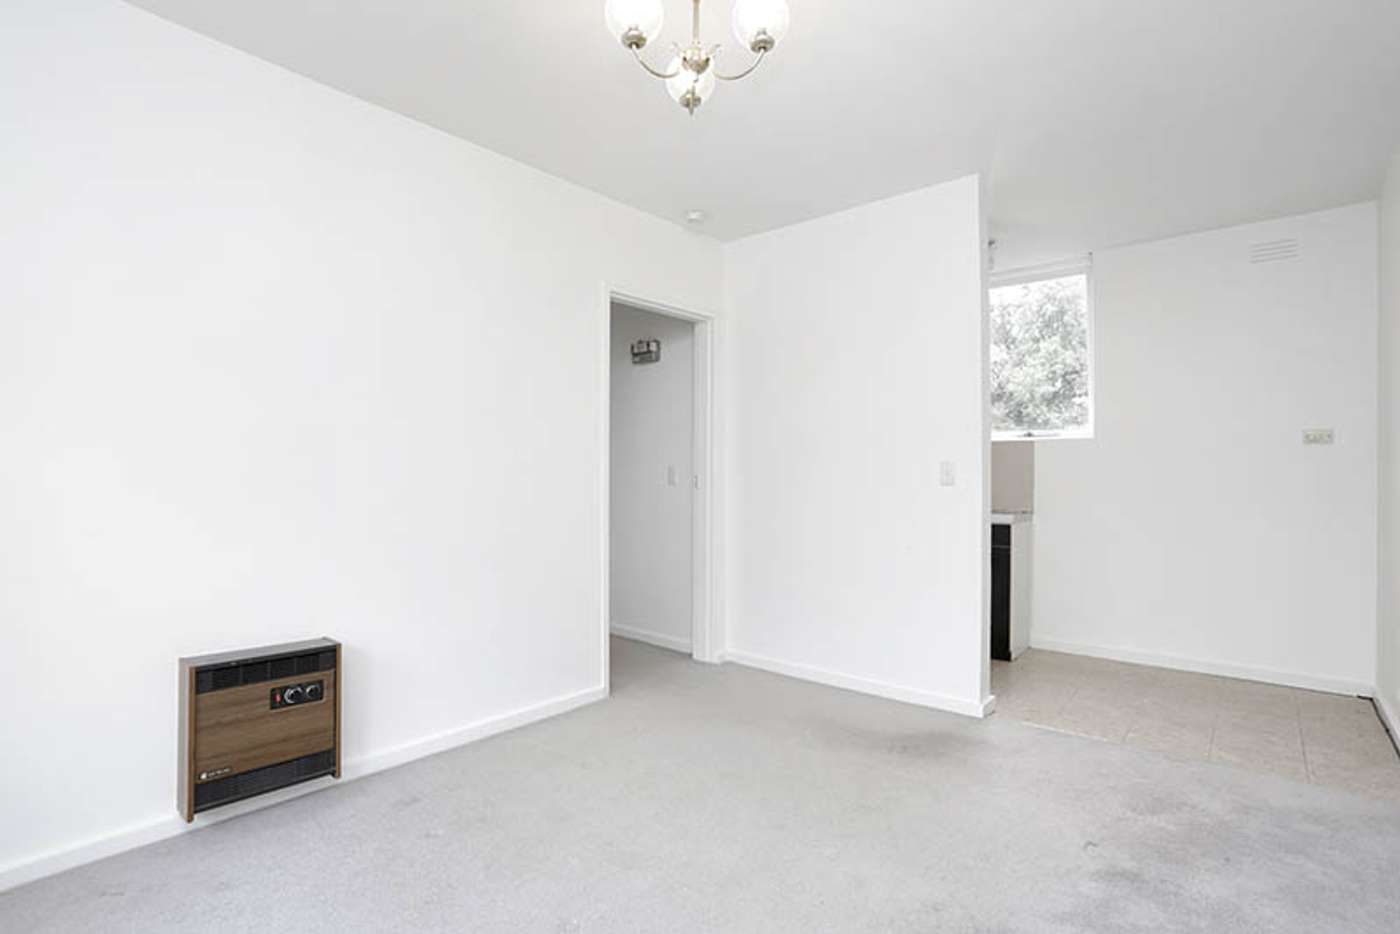 Fifth view of Homely apartment listing, 5/70 Lyndhurst Street, Richmond VIC 3121